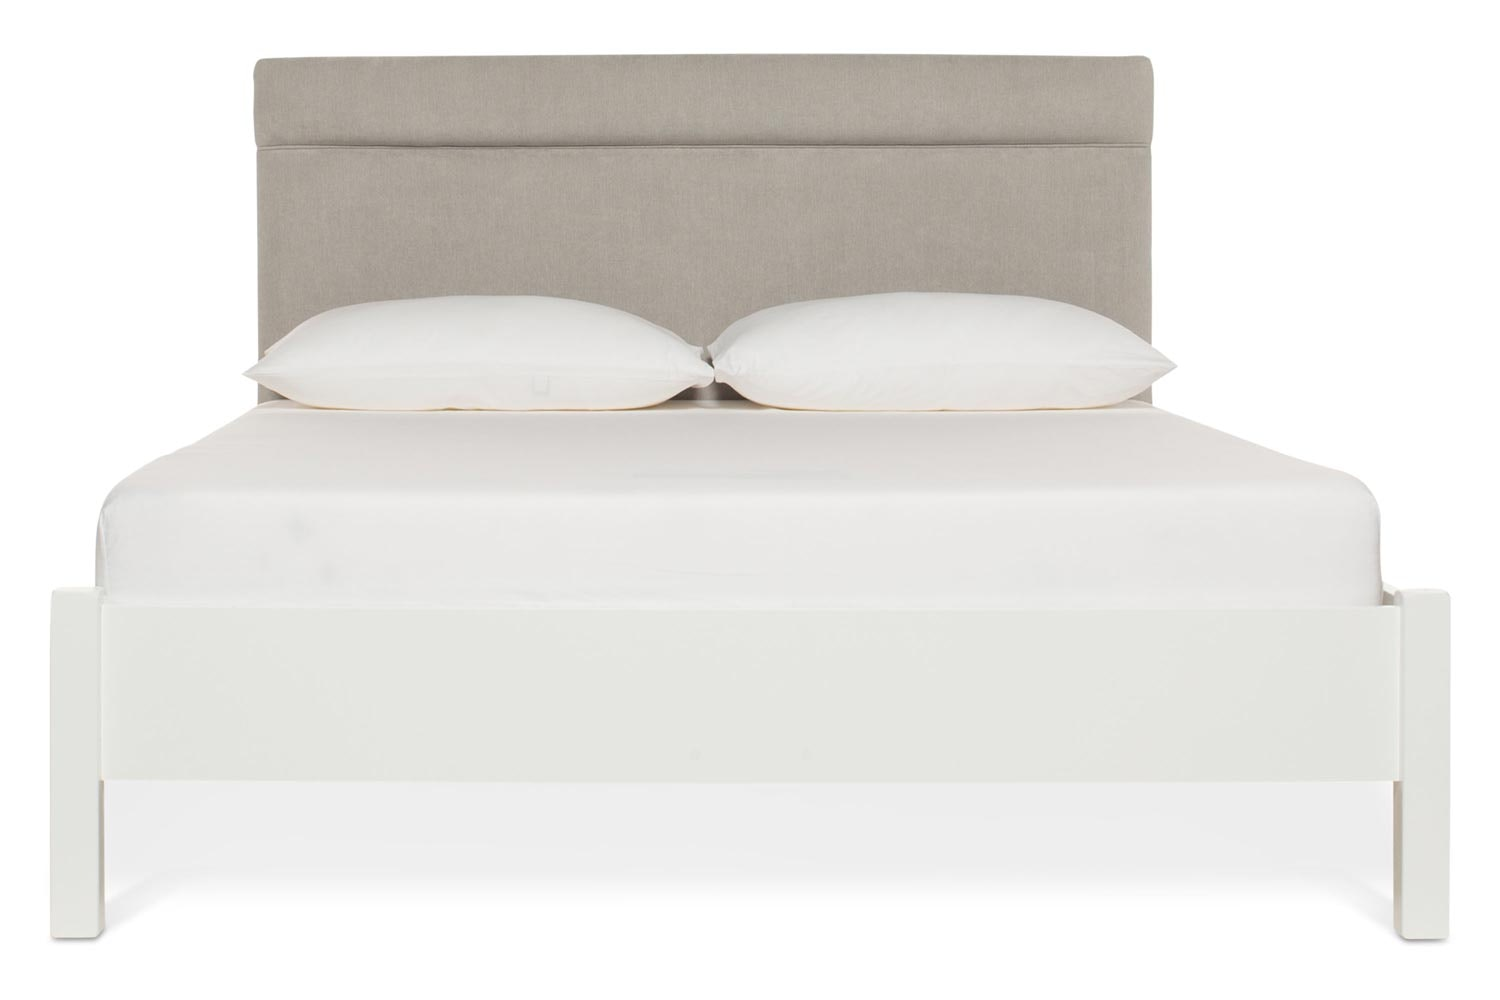 Emily Loft White Bed Frame | 5FT | Elton Headboard Silver